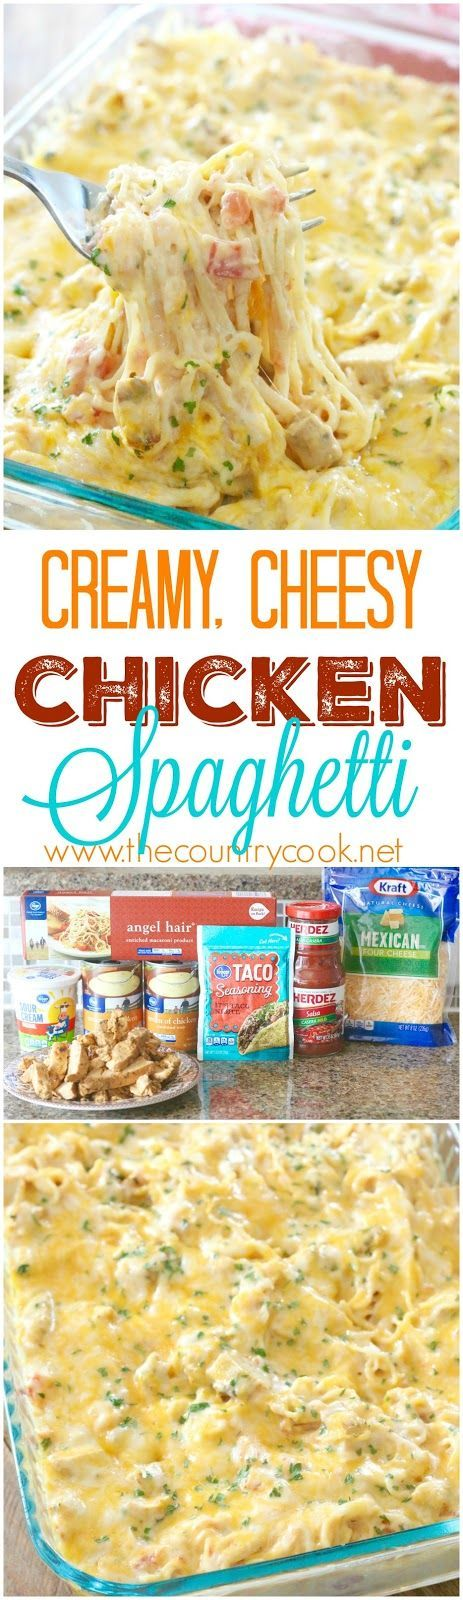 Creamy, Cheesy Chicken Spaghetti recipe from The Country Cook. The *BEST…